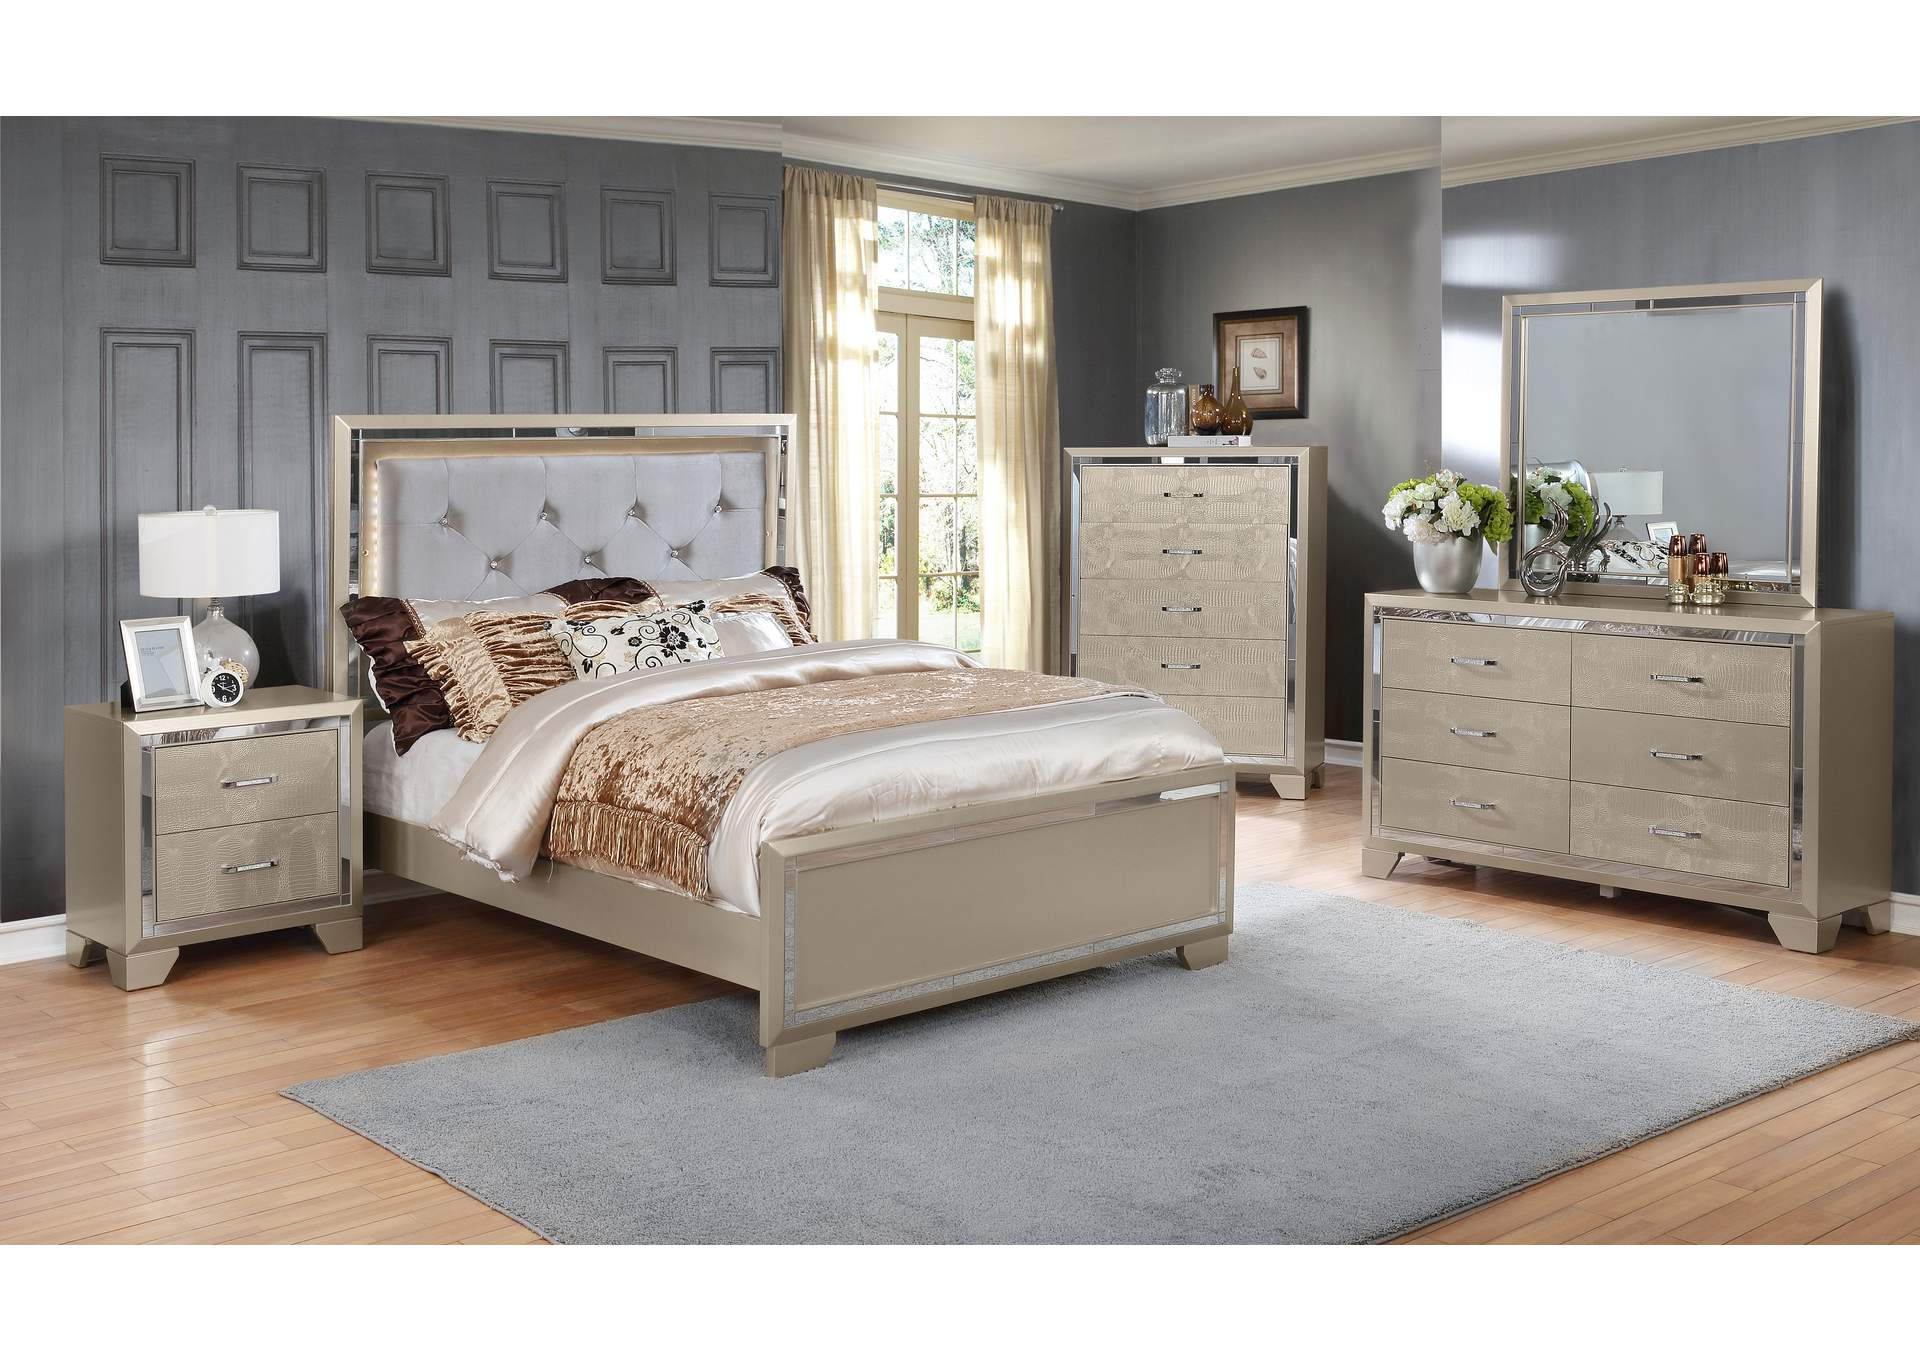 Rozzelli Pearl Panel King Bed,Global Trading